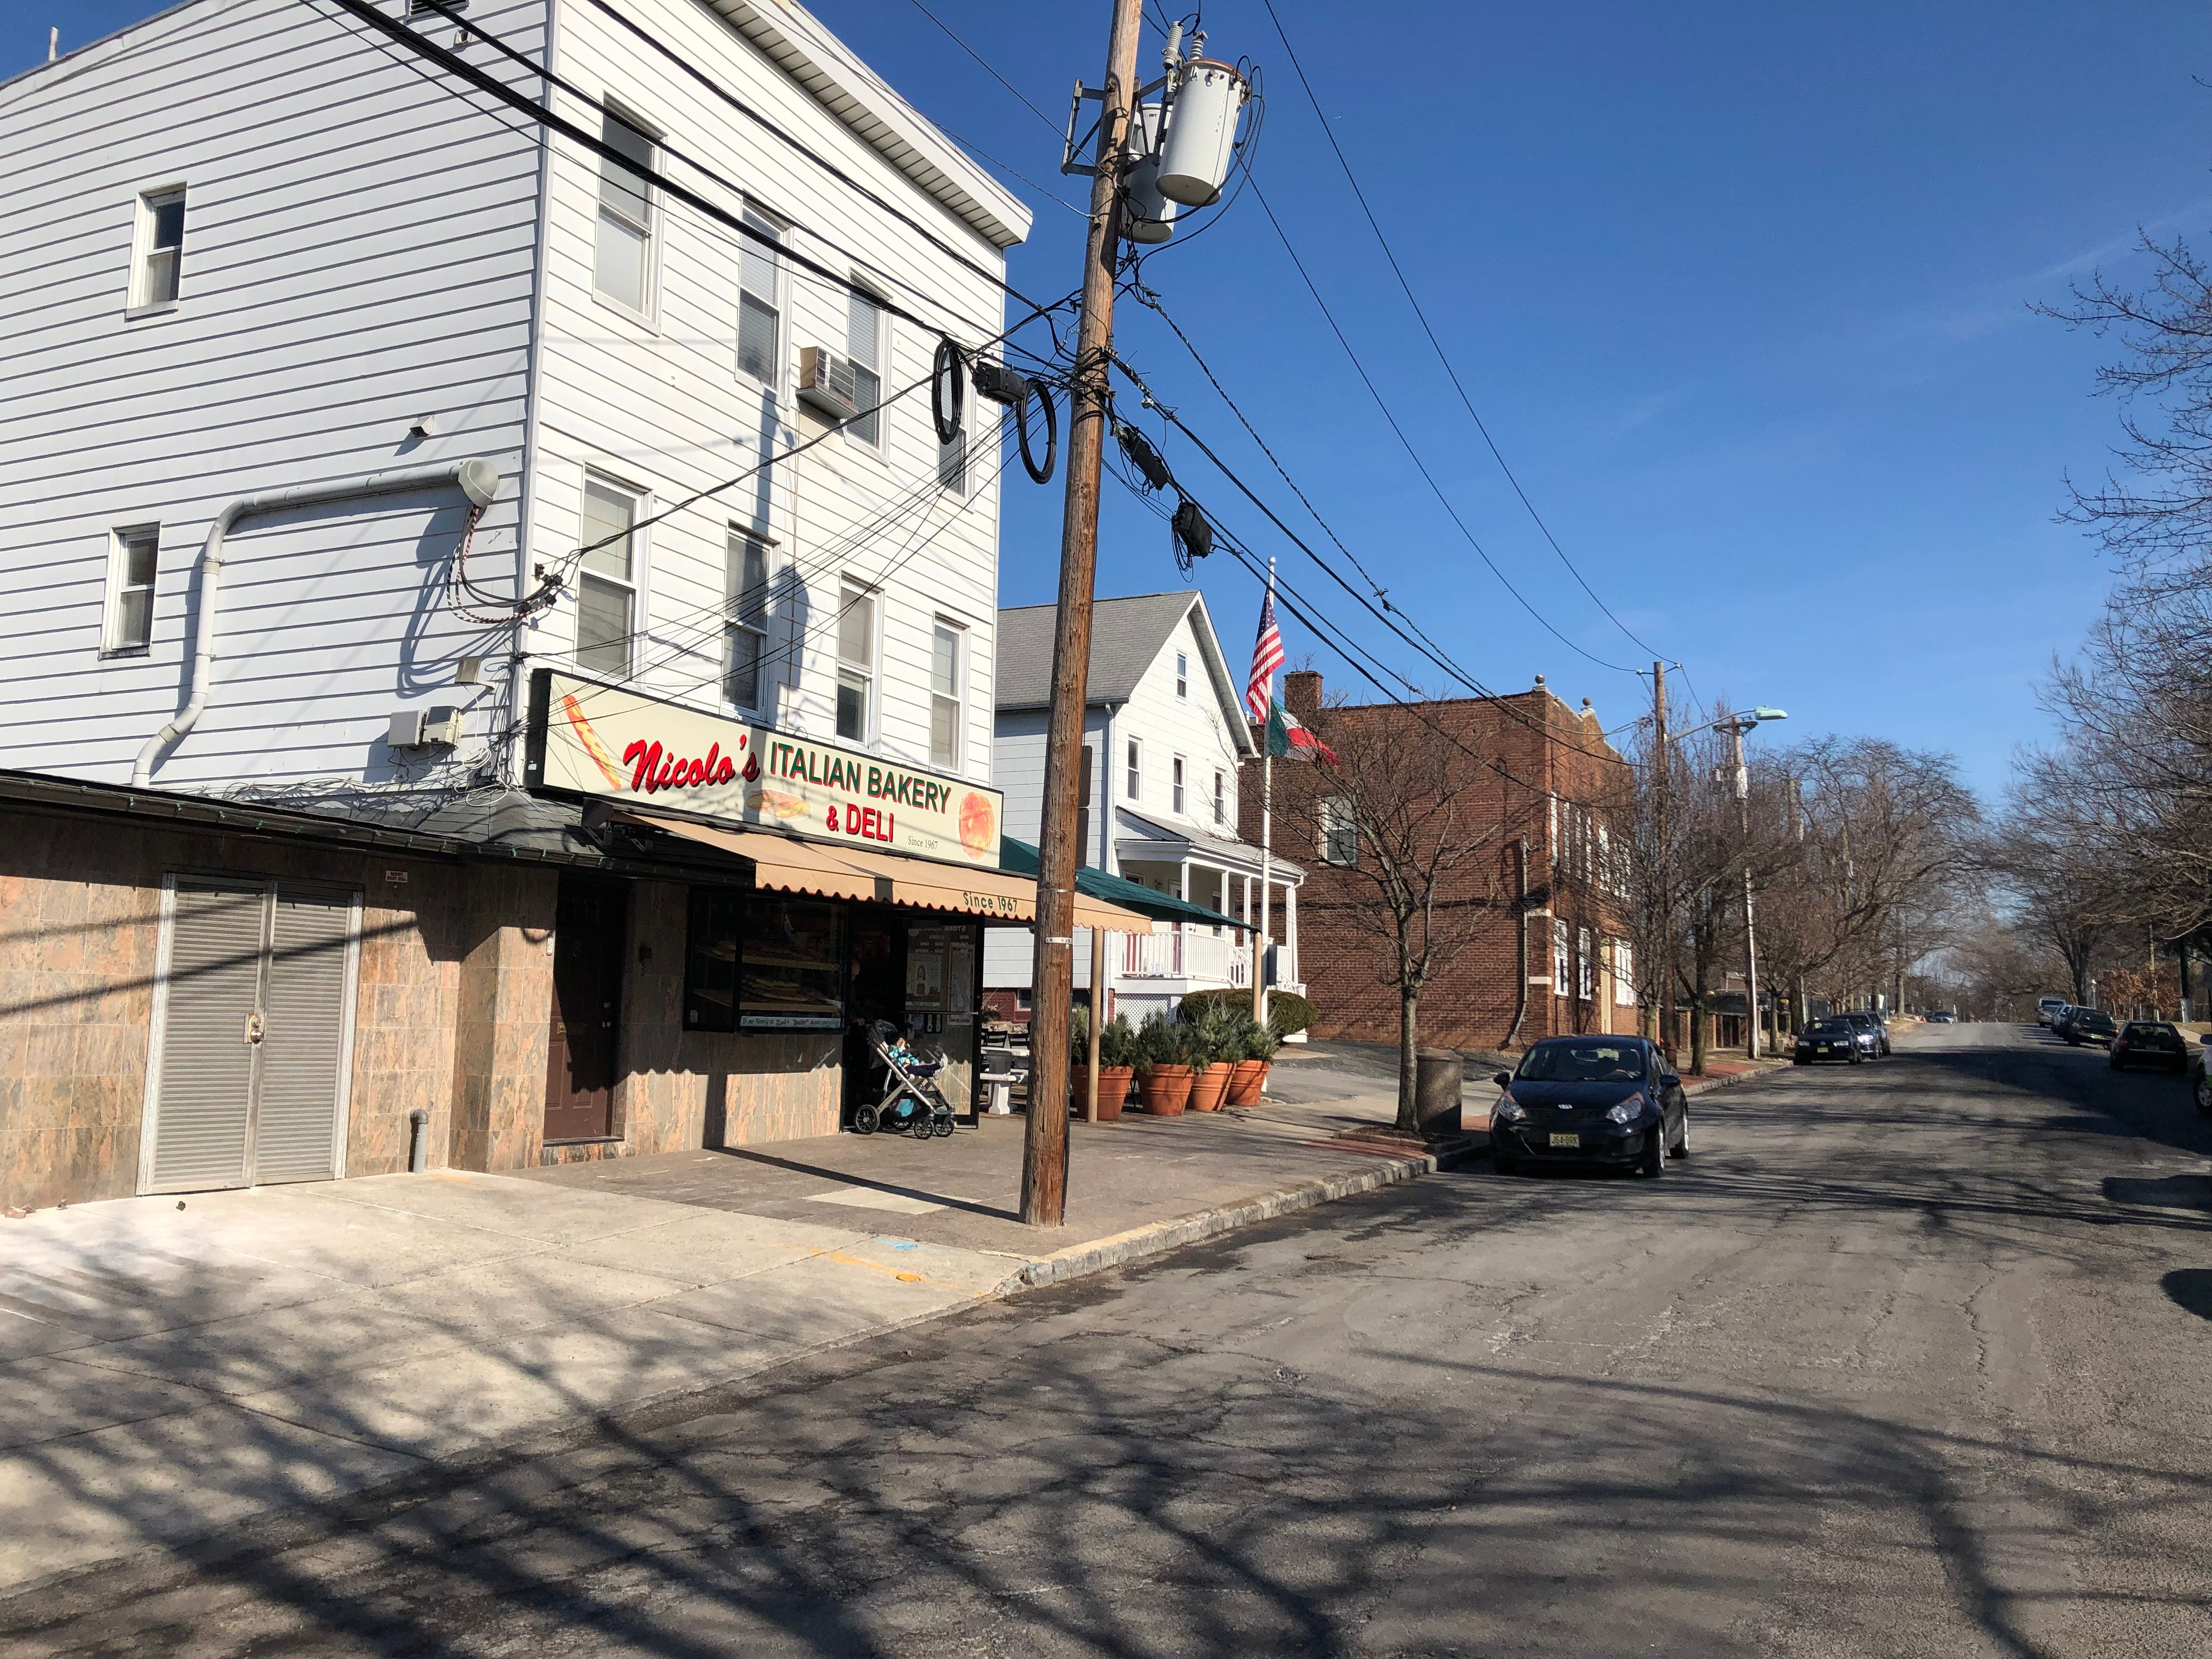 Nicolo's Italian Bakery & Deli at 6 Baldwin St. in Montclair is a holdover from the days when the area was populated by Italian immigrants. A new luxury residential building is being built a few hundred yards down Baldwin Street.